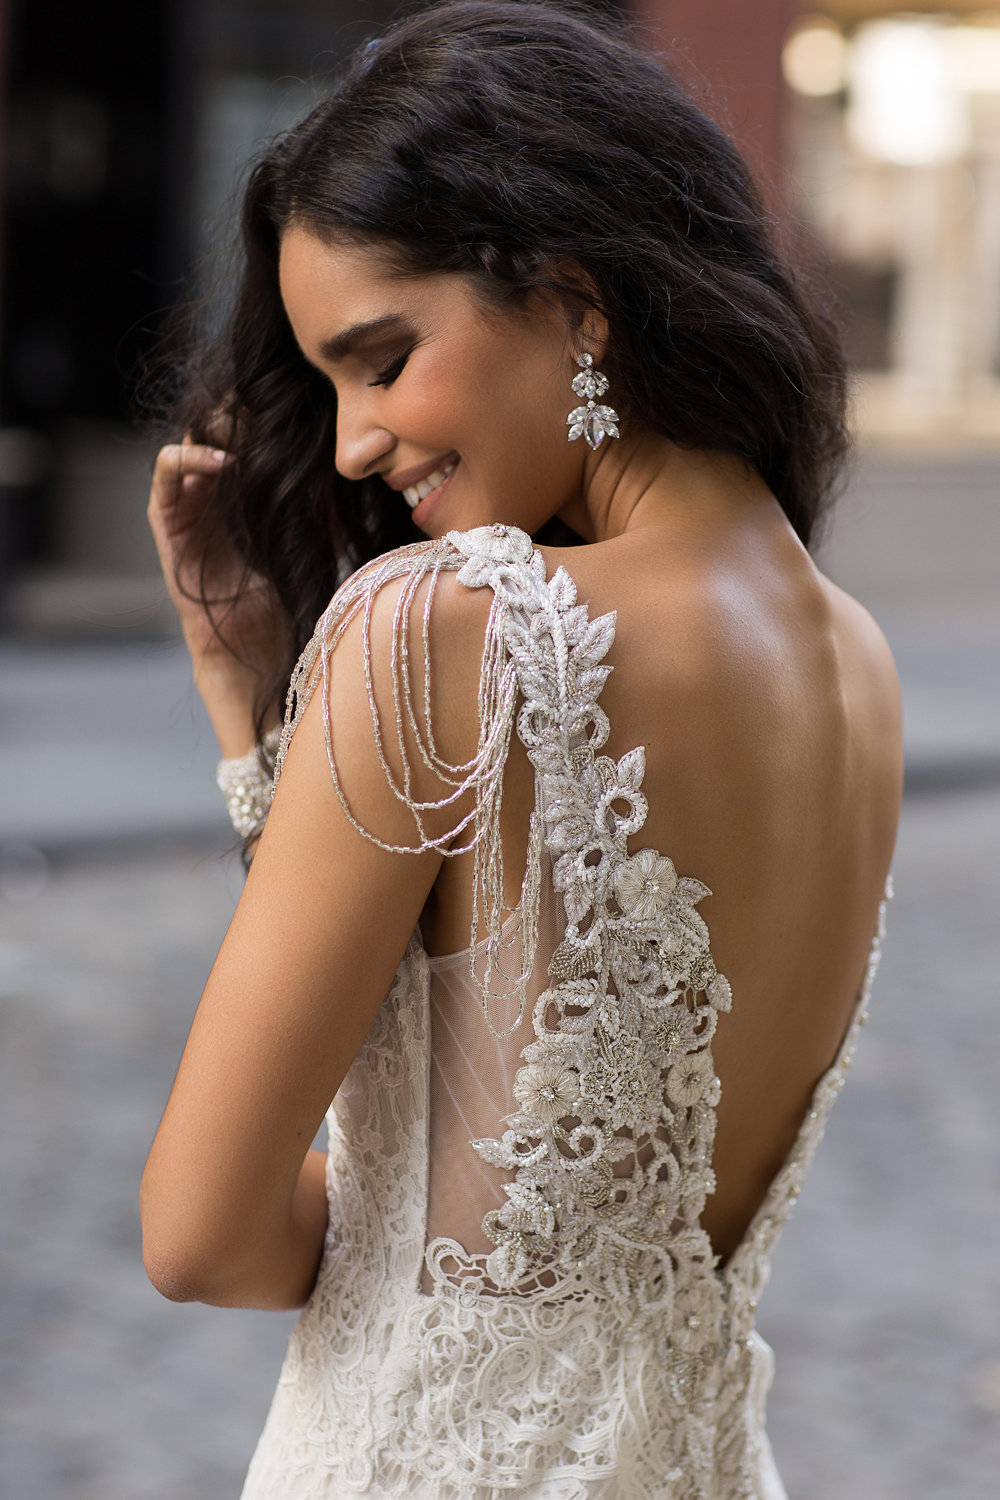 Anna Campbell Bridal Saasha Dress | Vintage-inspired lace wedding dress with embellished back details